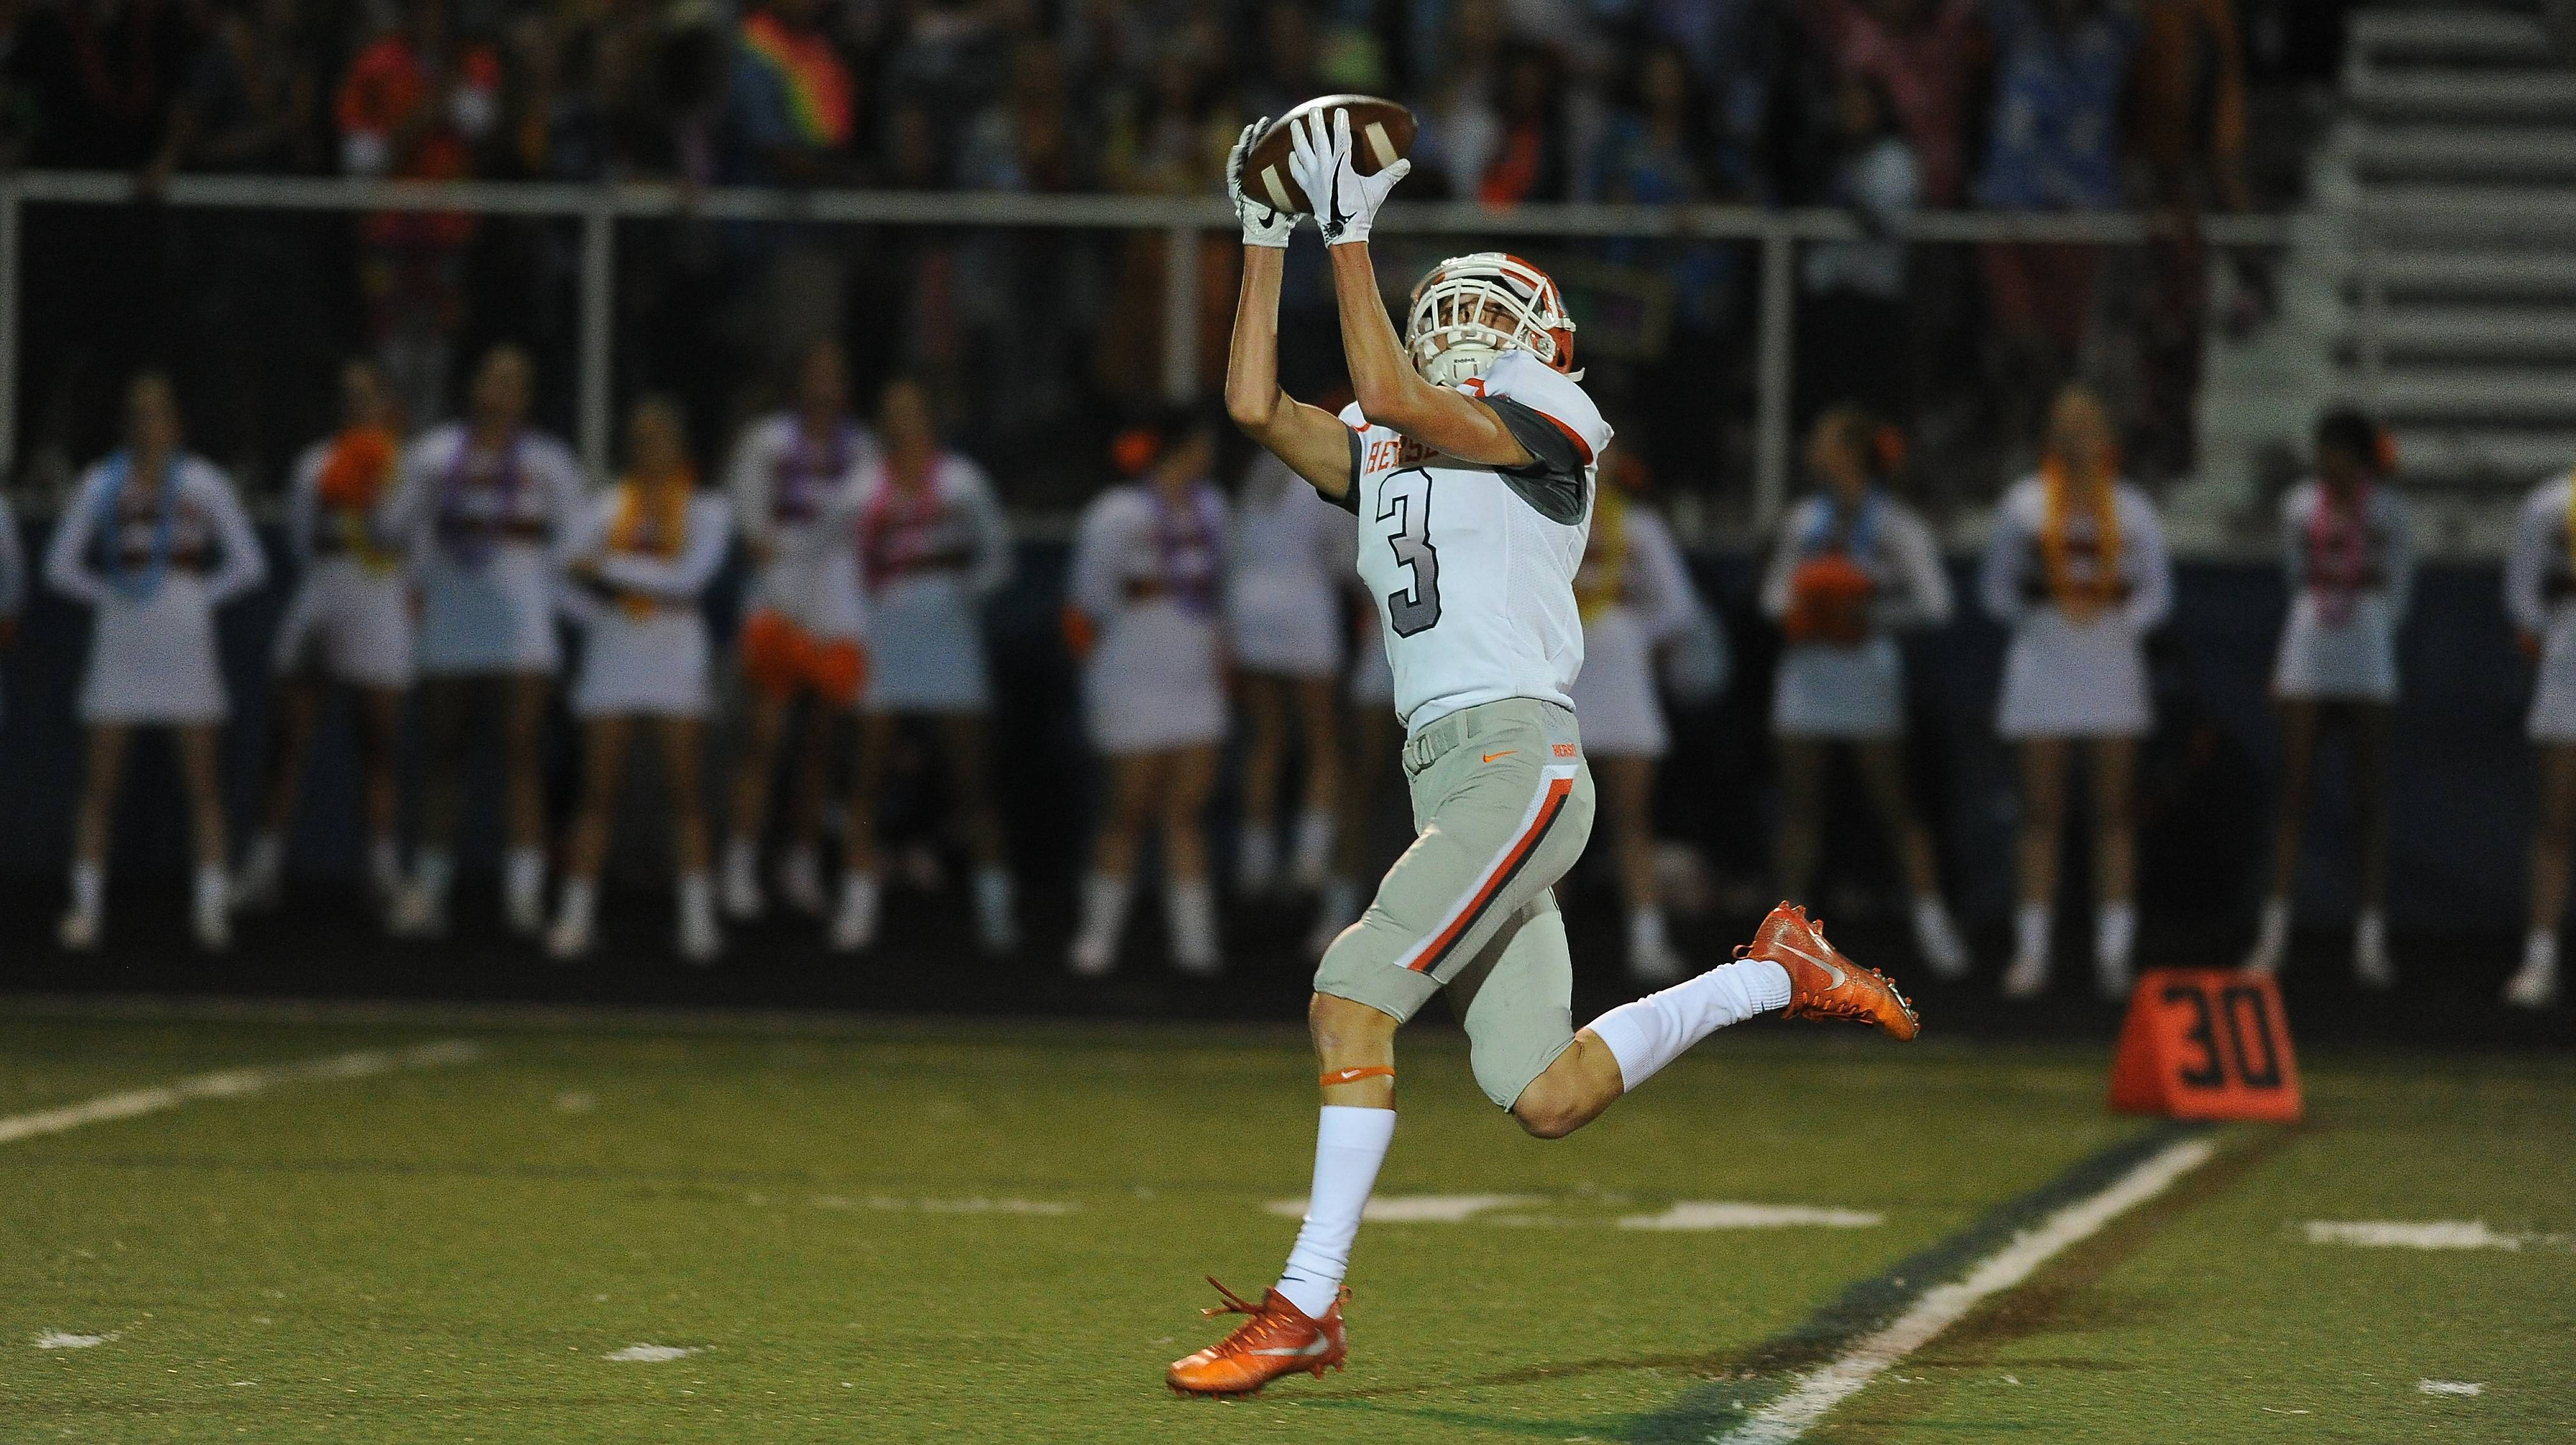 Hersey's Sean Watters hauls in a 65-yard touchdown pass in the first half Friday.